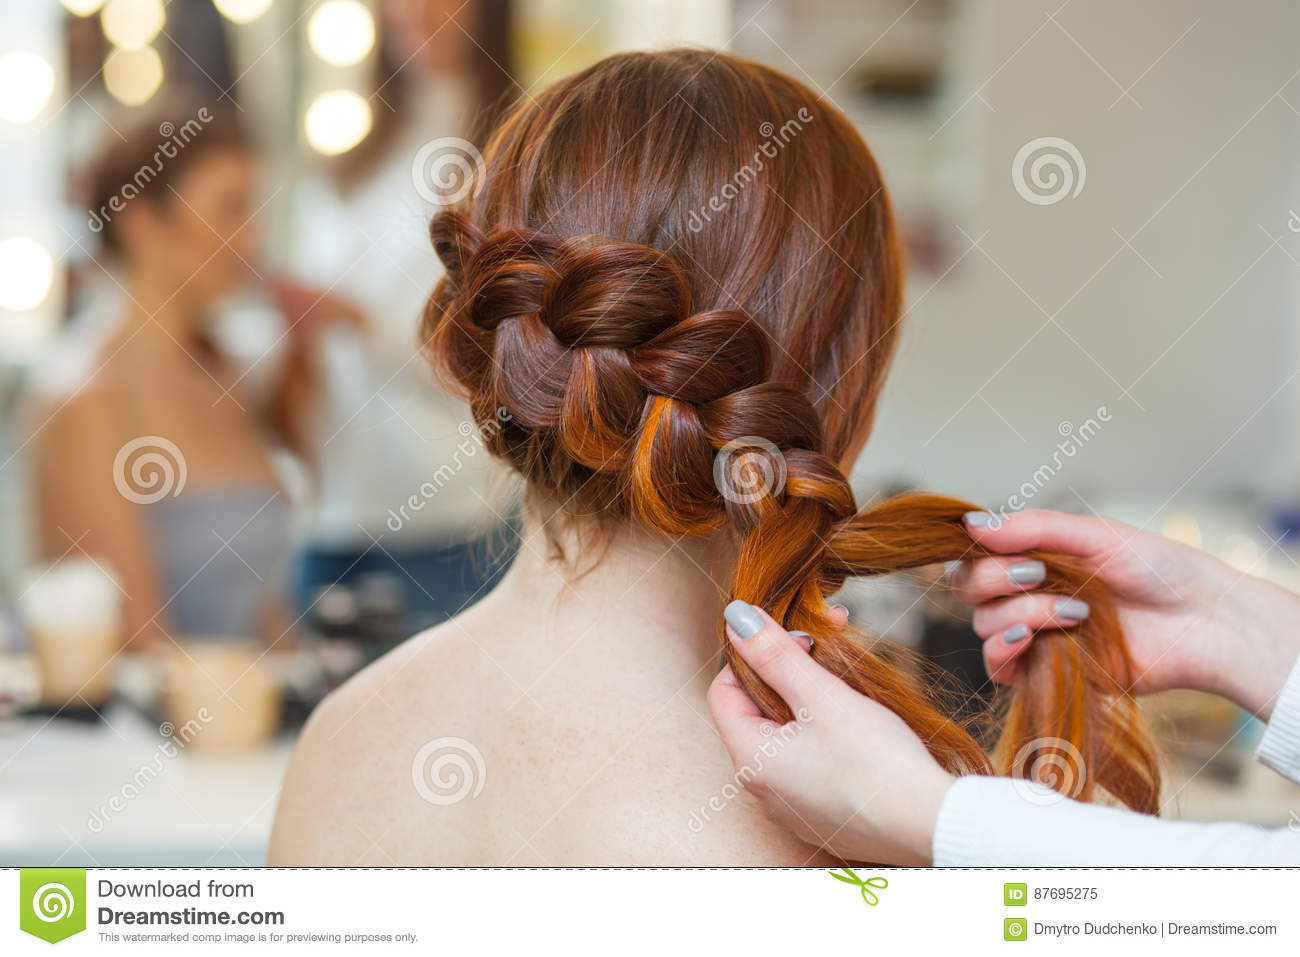 Beautiful red-haired hairy girl, hairdresser weaves a French braid, close-up in a beauty salon.